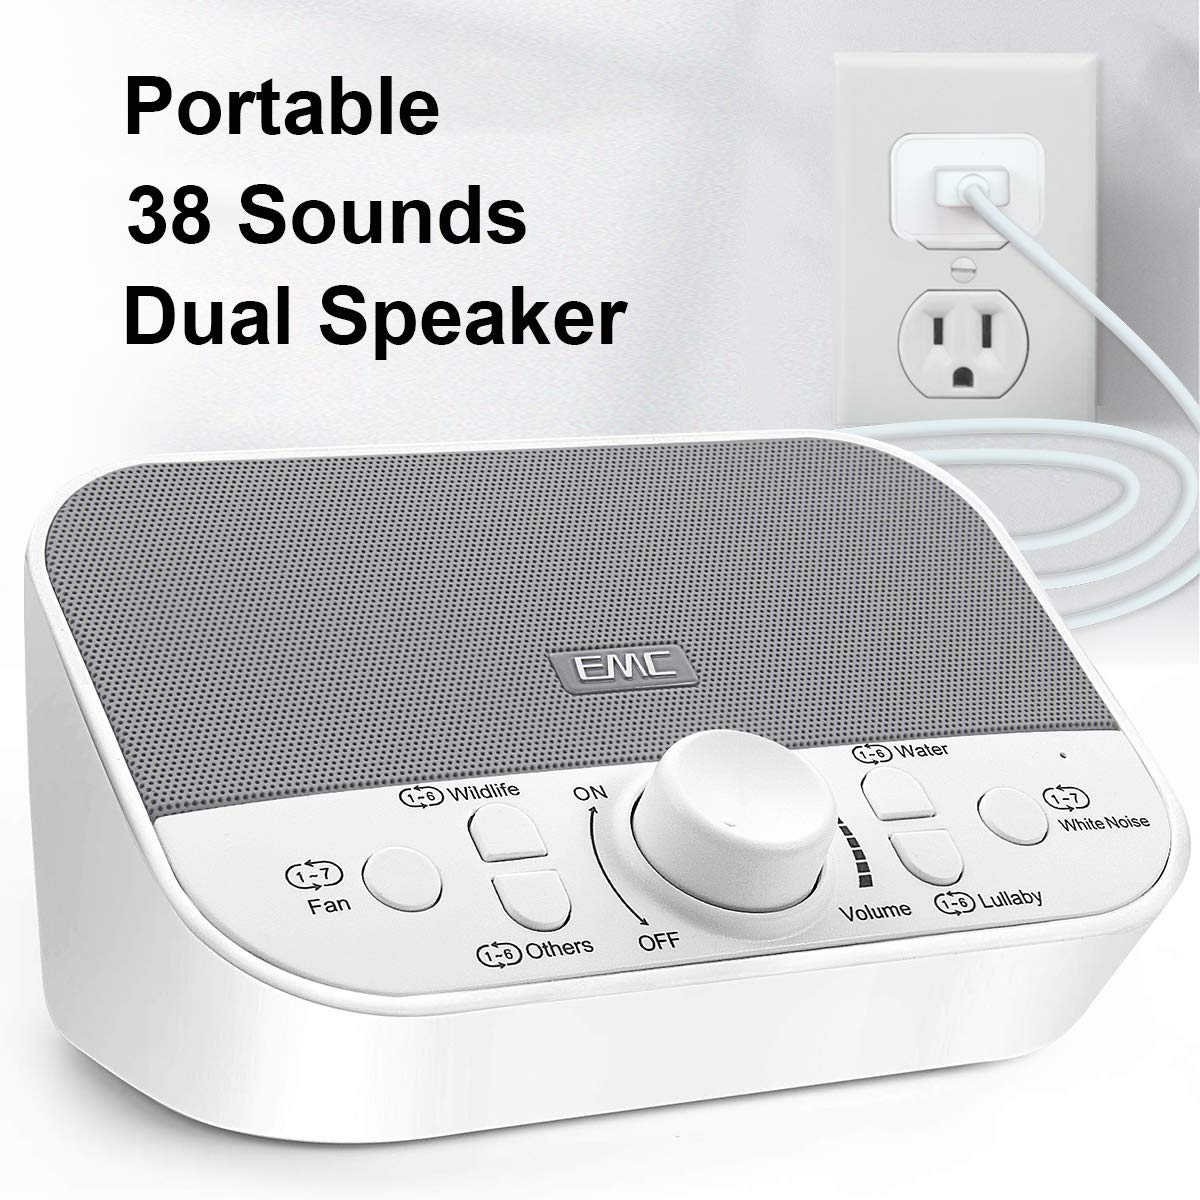 White Noise Machine - Sound Machine for Sleeping & Relaxation w/Timer - 38 Soothing Natural Sounds Noise Maker - Portable Sleep Sound Therapy for Home, Office or Travel - Built in USB Output Charger by Every Moment Counts